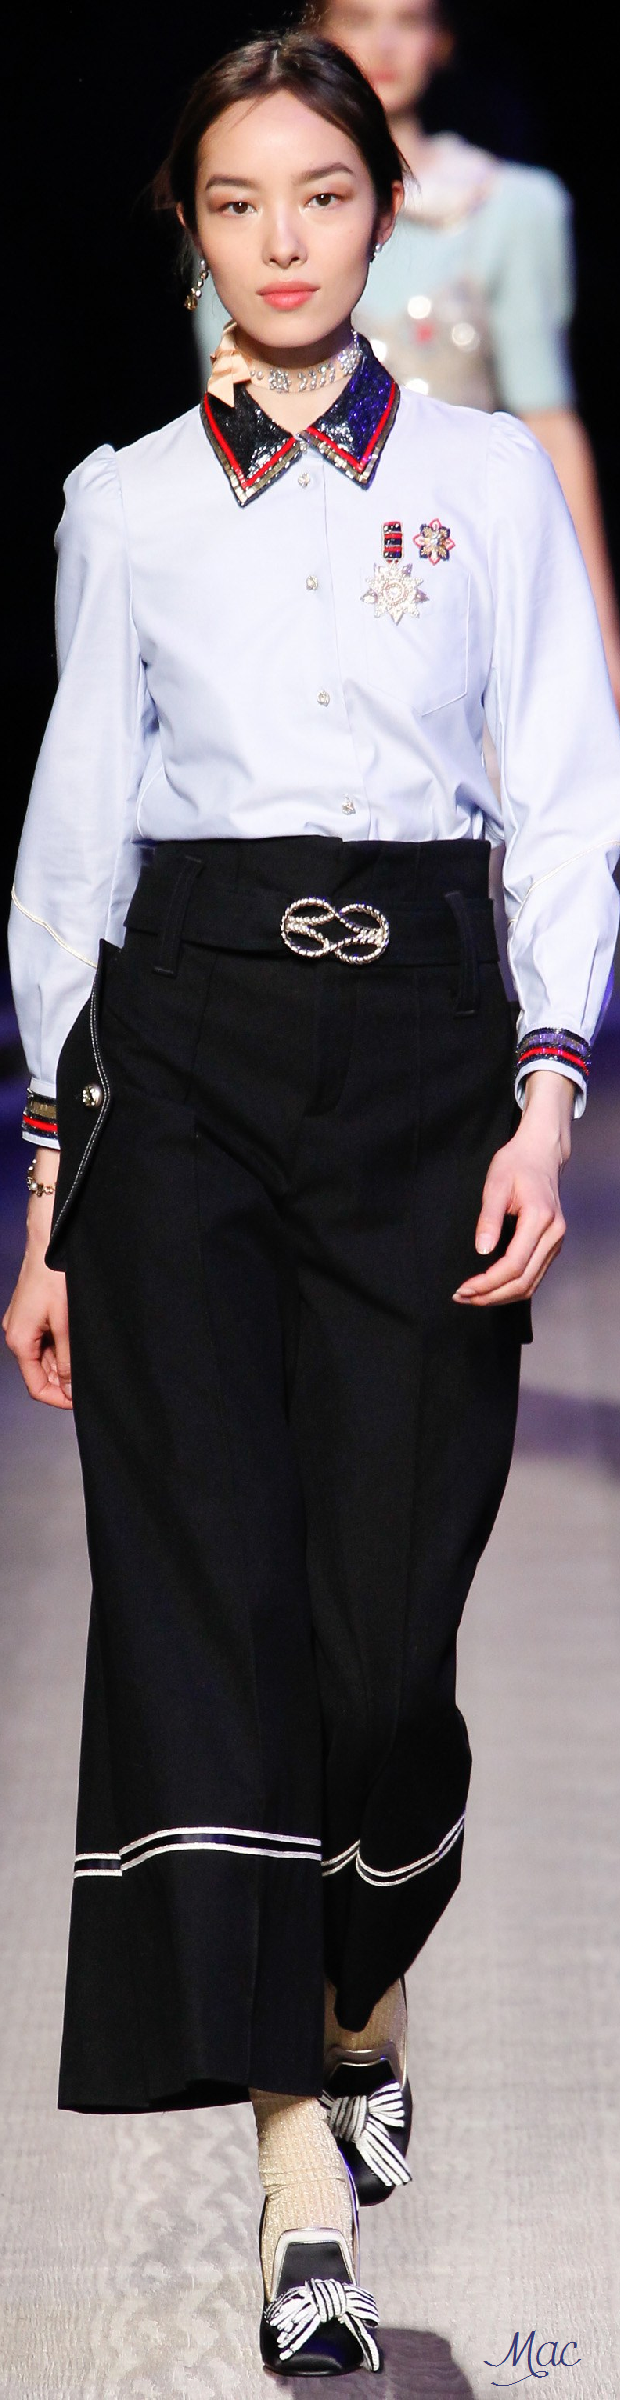 Fall 2016 Ready-to-Wear Tommy Hilfiger